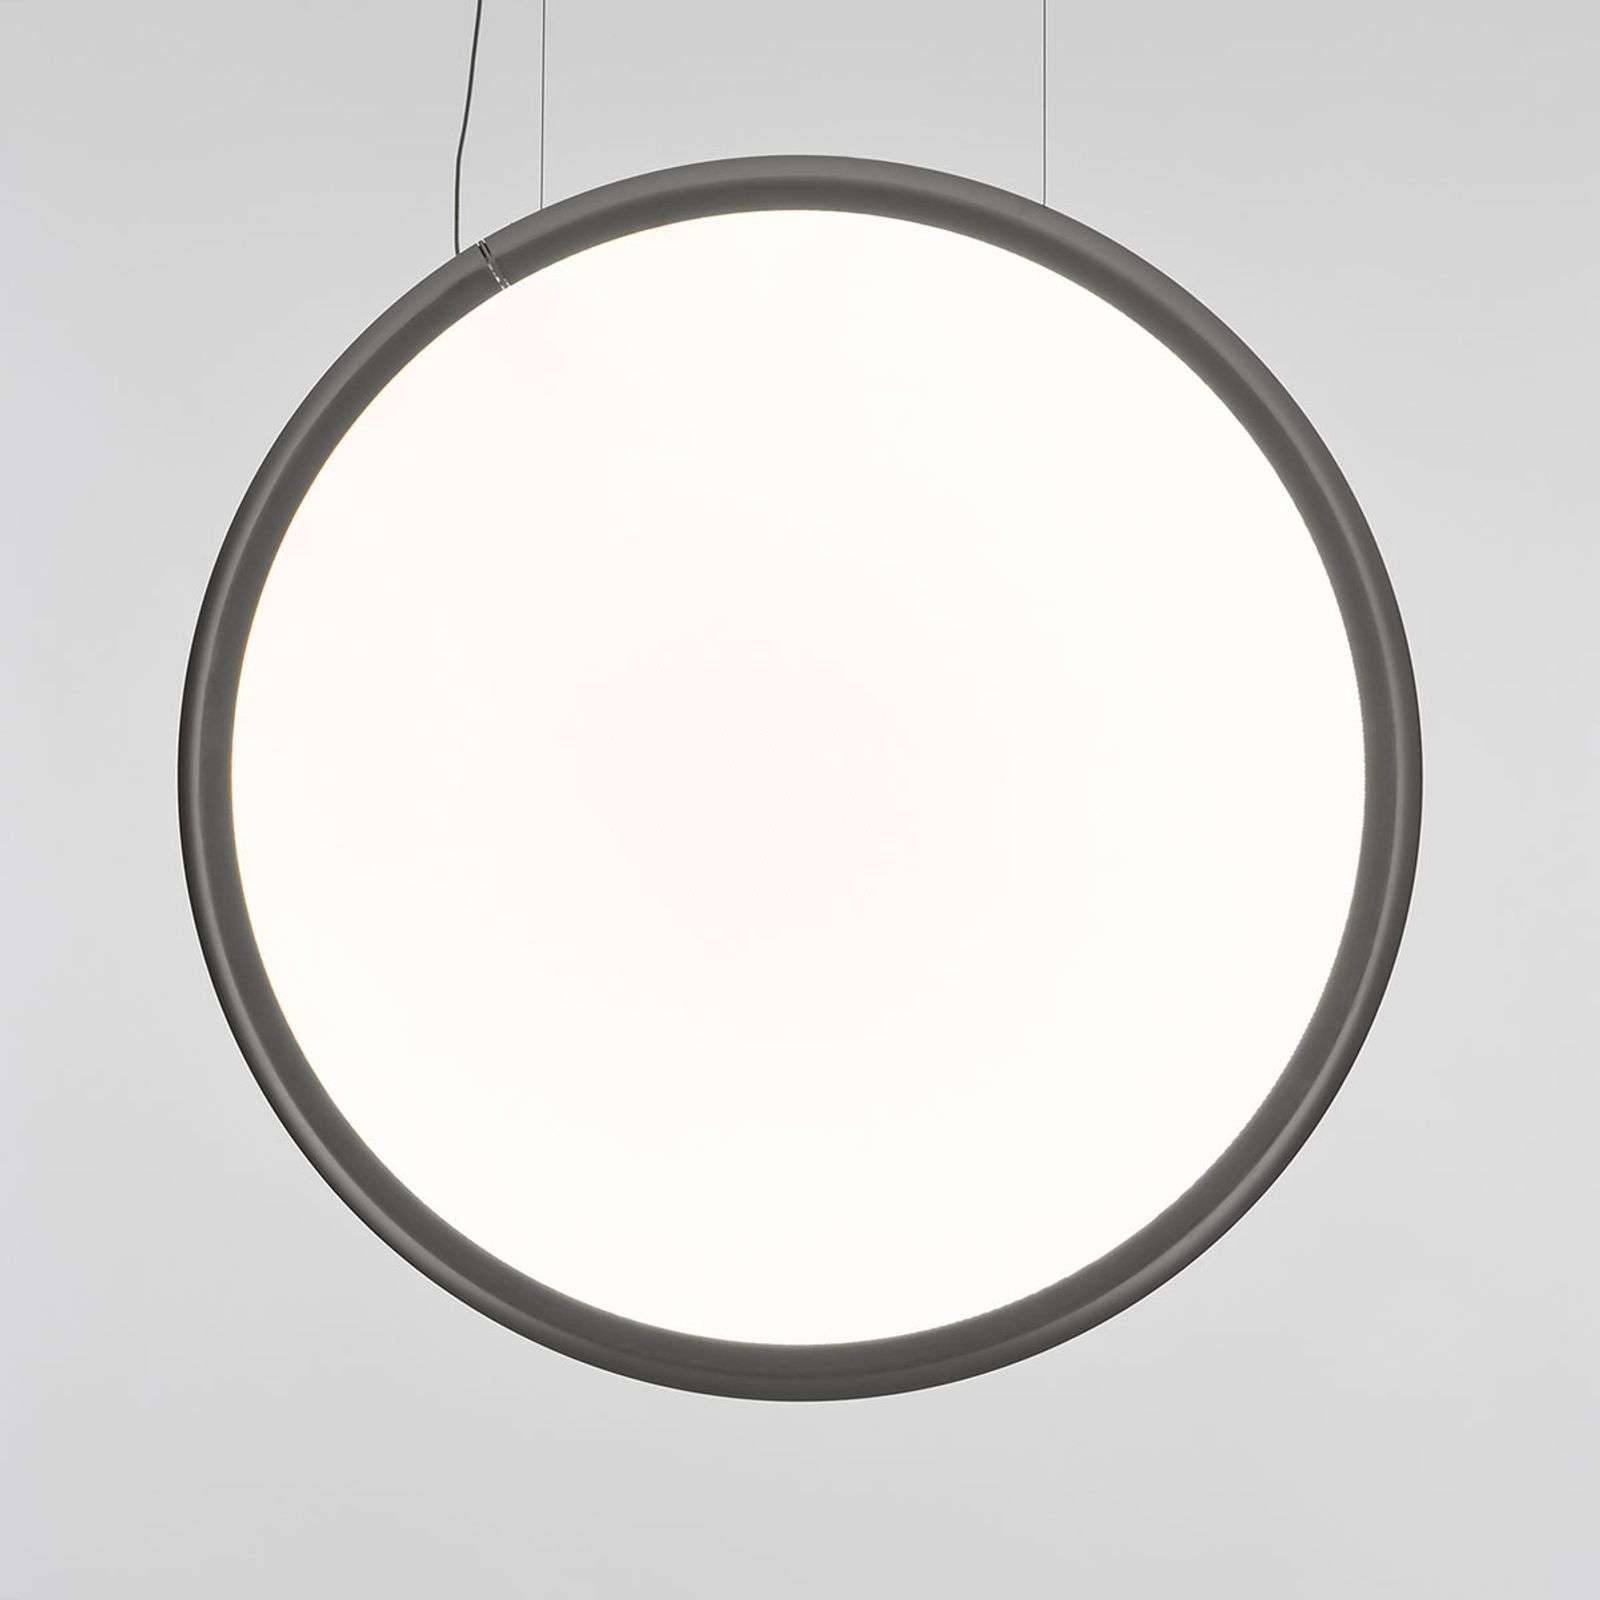 Artemide Discovery Vertical LED hanglamp 100 cm